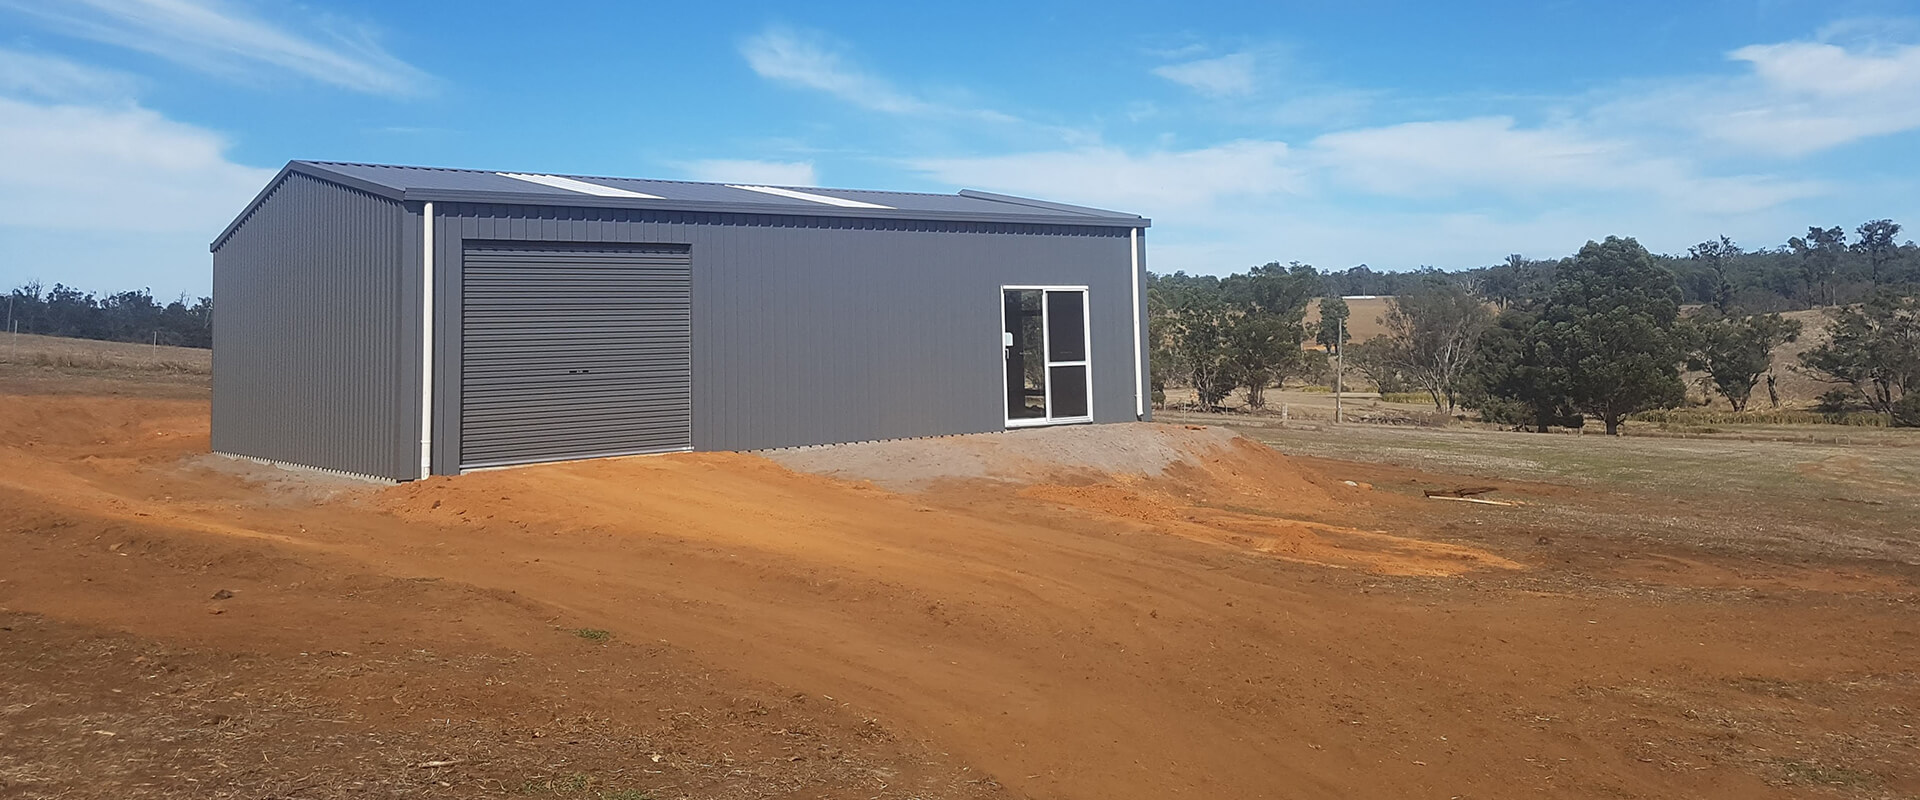 12 x 9 x 3.2m Enclosed Shed